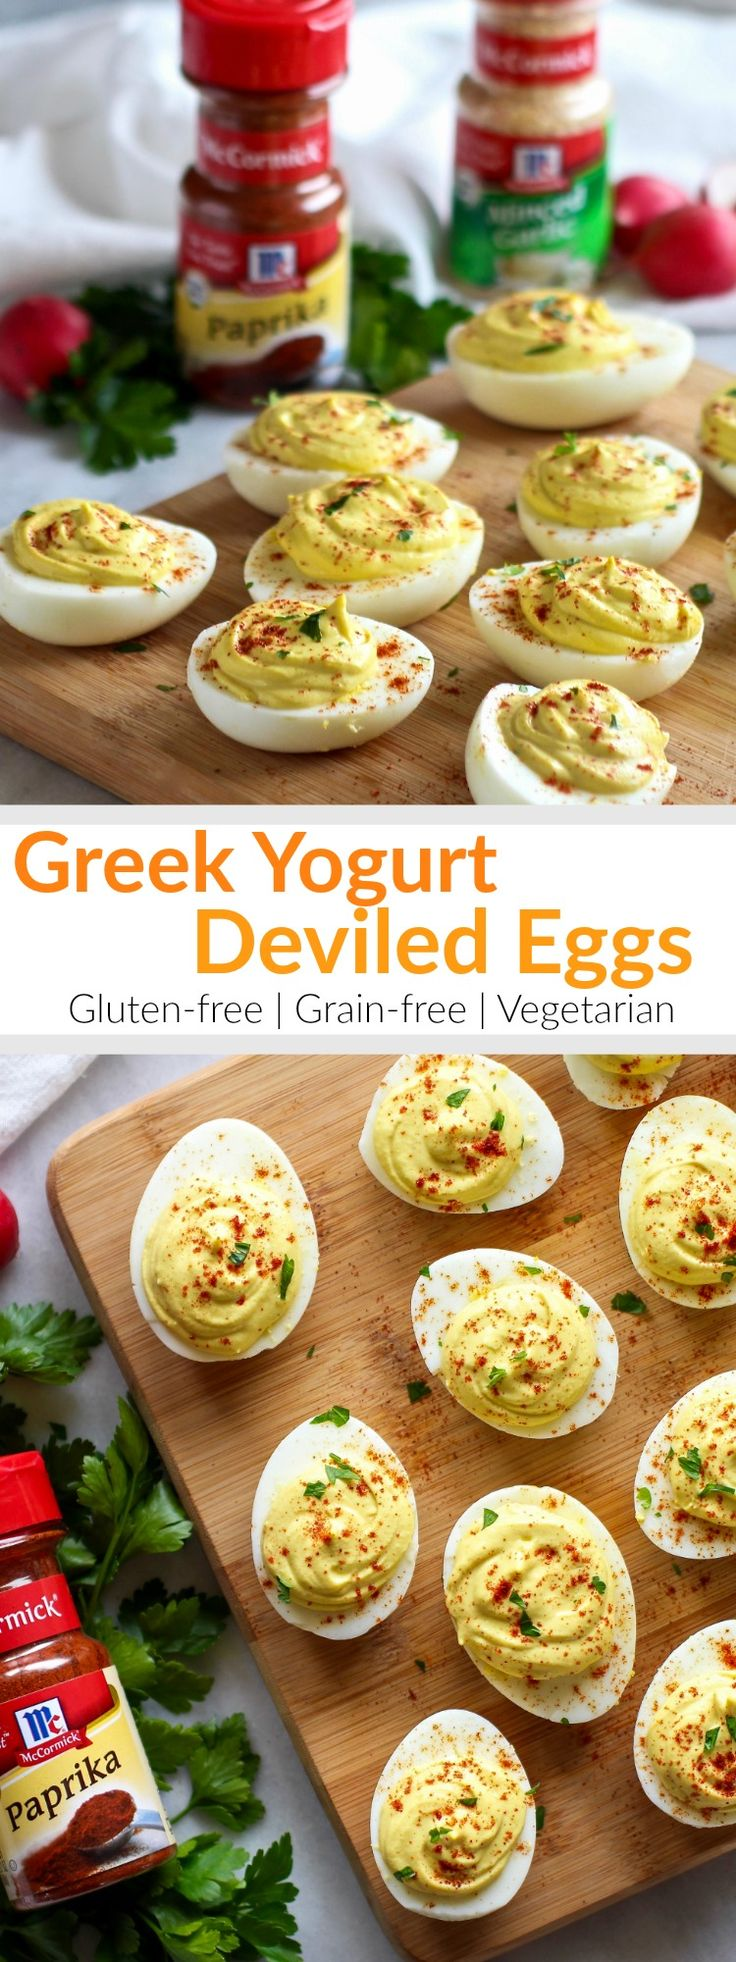 Tangy and thick Greek yogurt takes the place of mayo in our Greek Yogurt Deviled Eggs. Made with just 5 simple ingredients dusted with @mccormickspice smokey paprika! The Real Food Dietitians | http://therealfoodrds.com/greek-yogurt-deviled-eggs/ #ad #sponsored